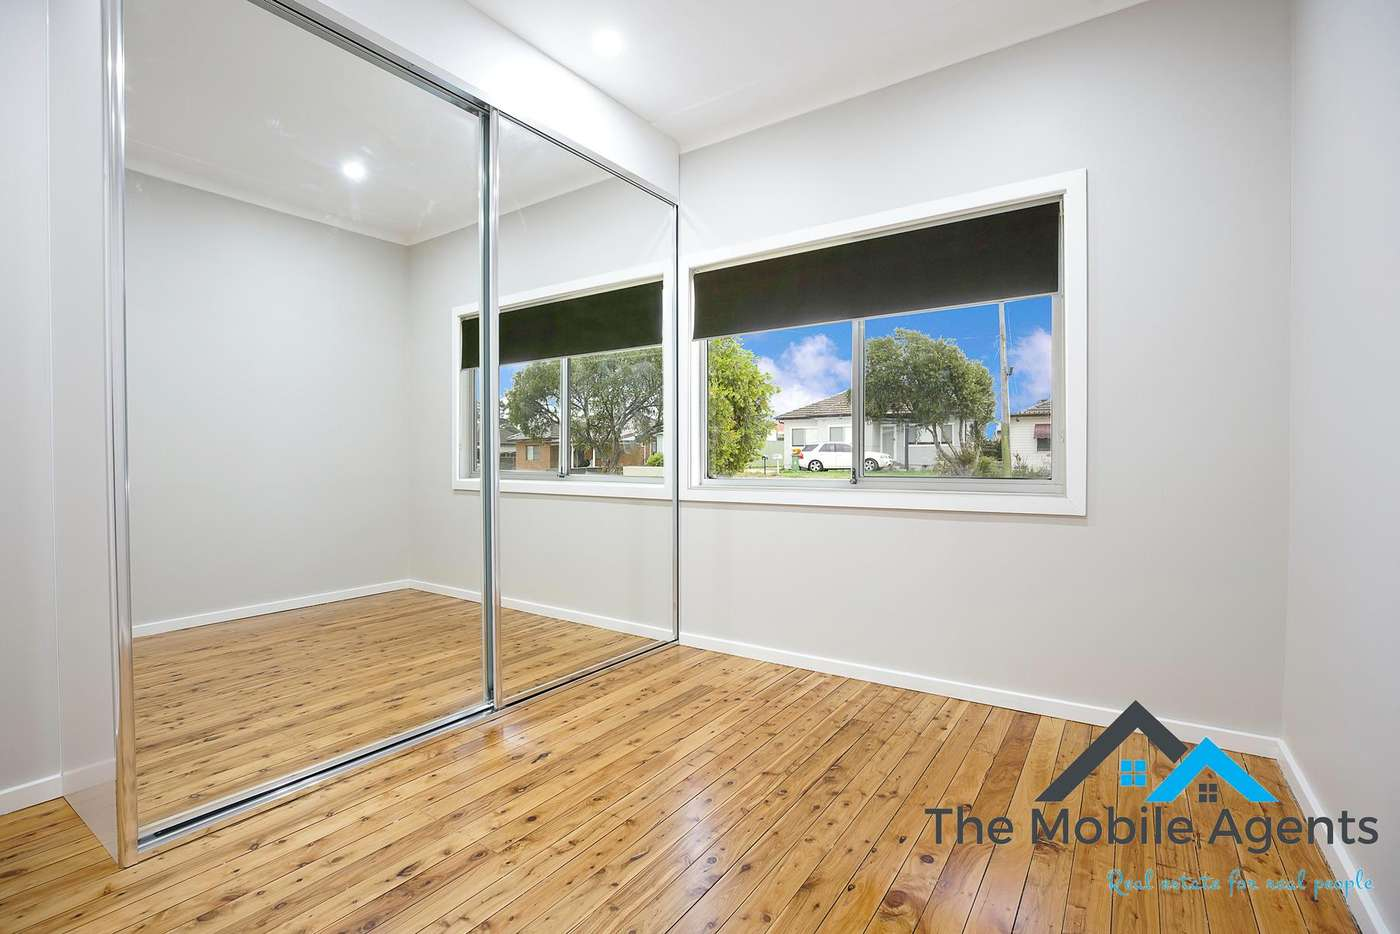 Sixth view of Homely house listing, 12 Leonard Street, Colyton NSW 2760